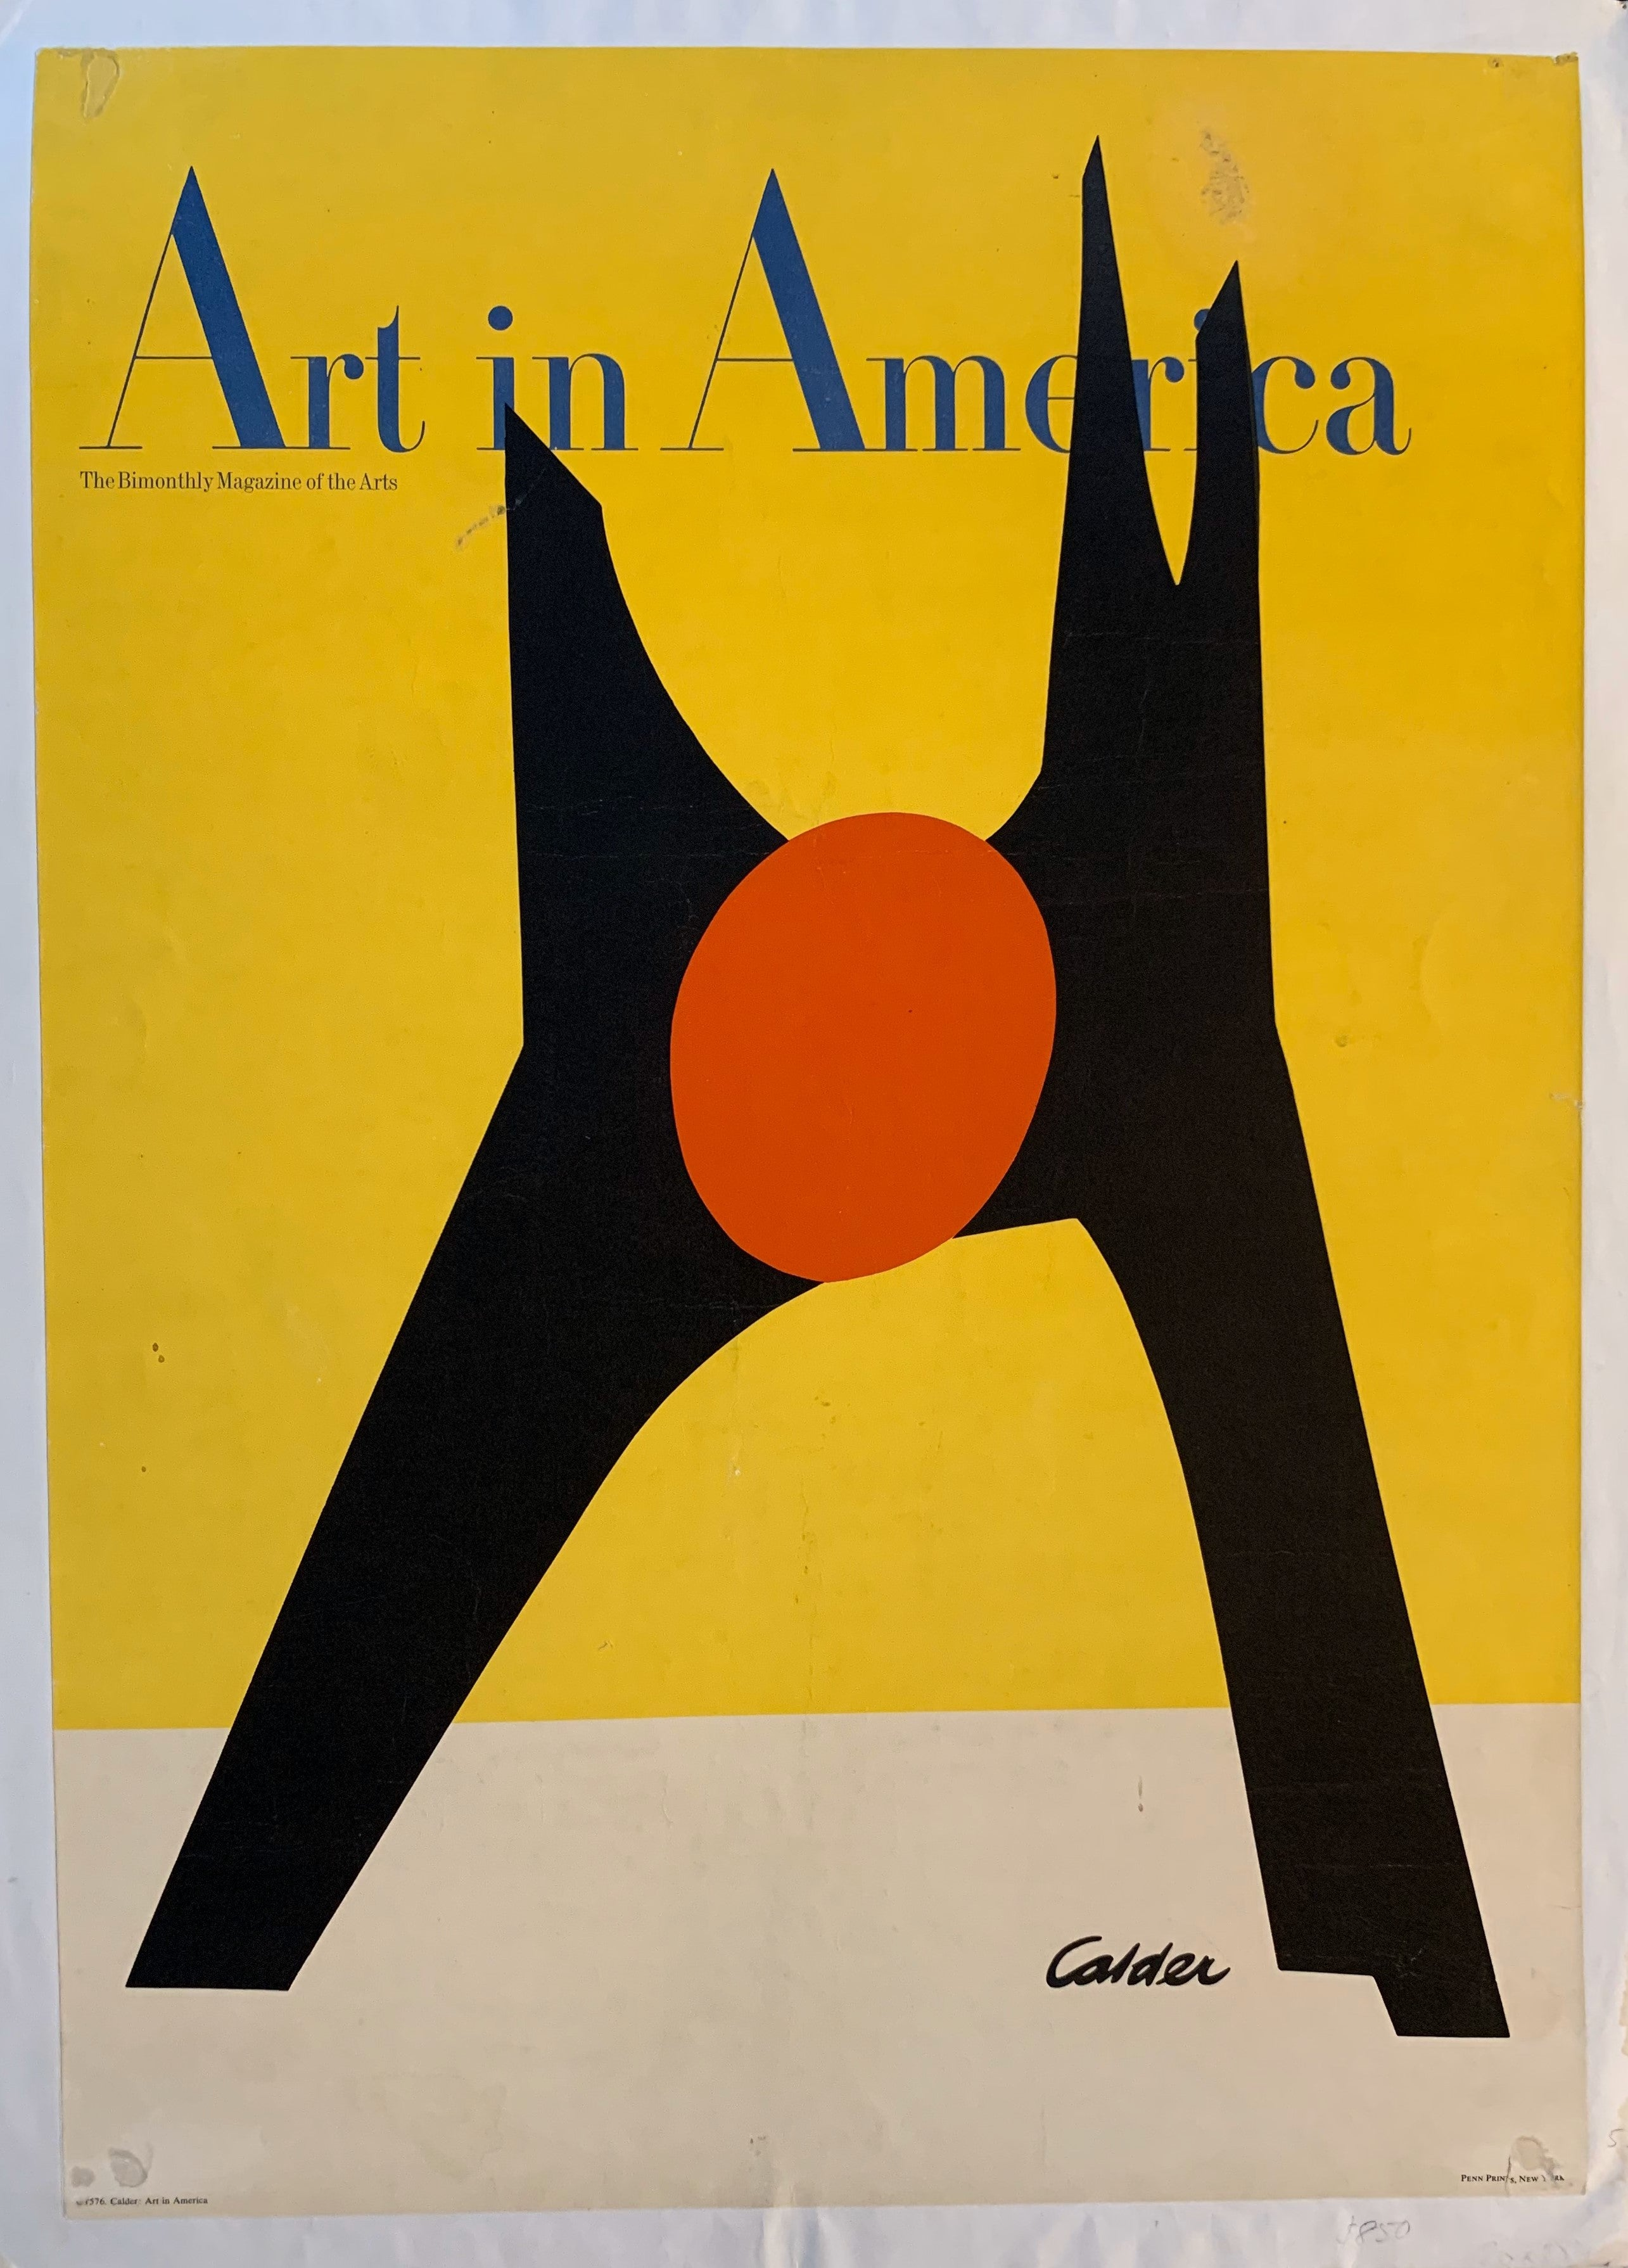 Art in America - The Bimonthly Magazine of the Arts